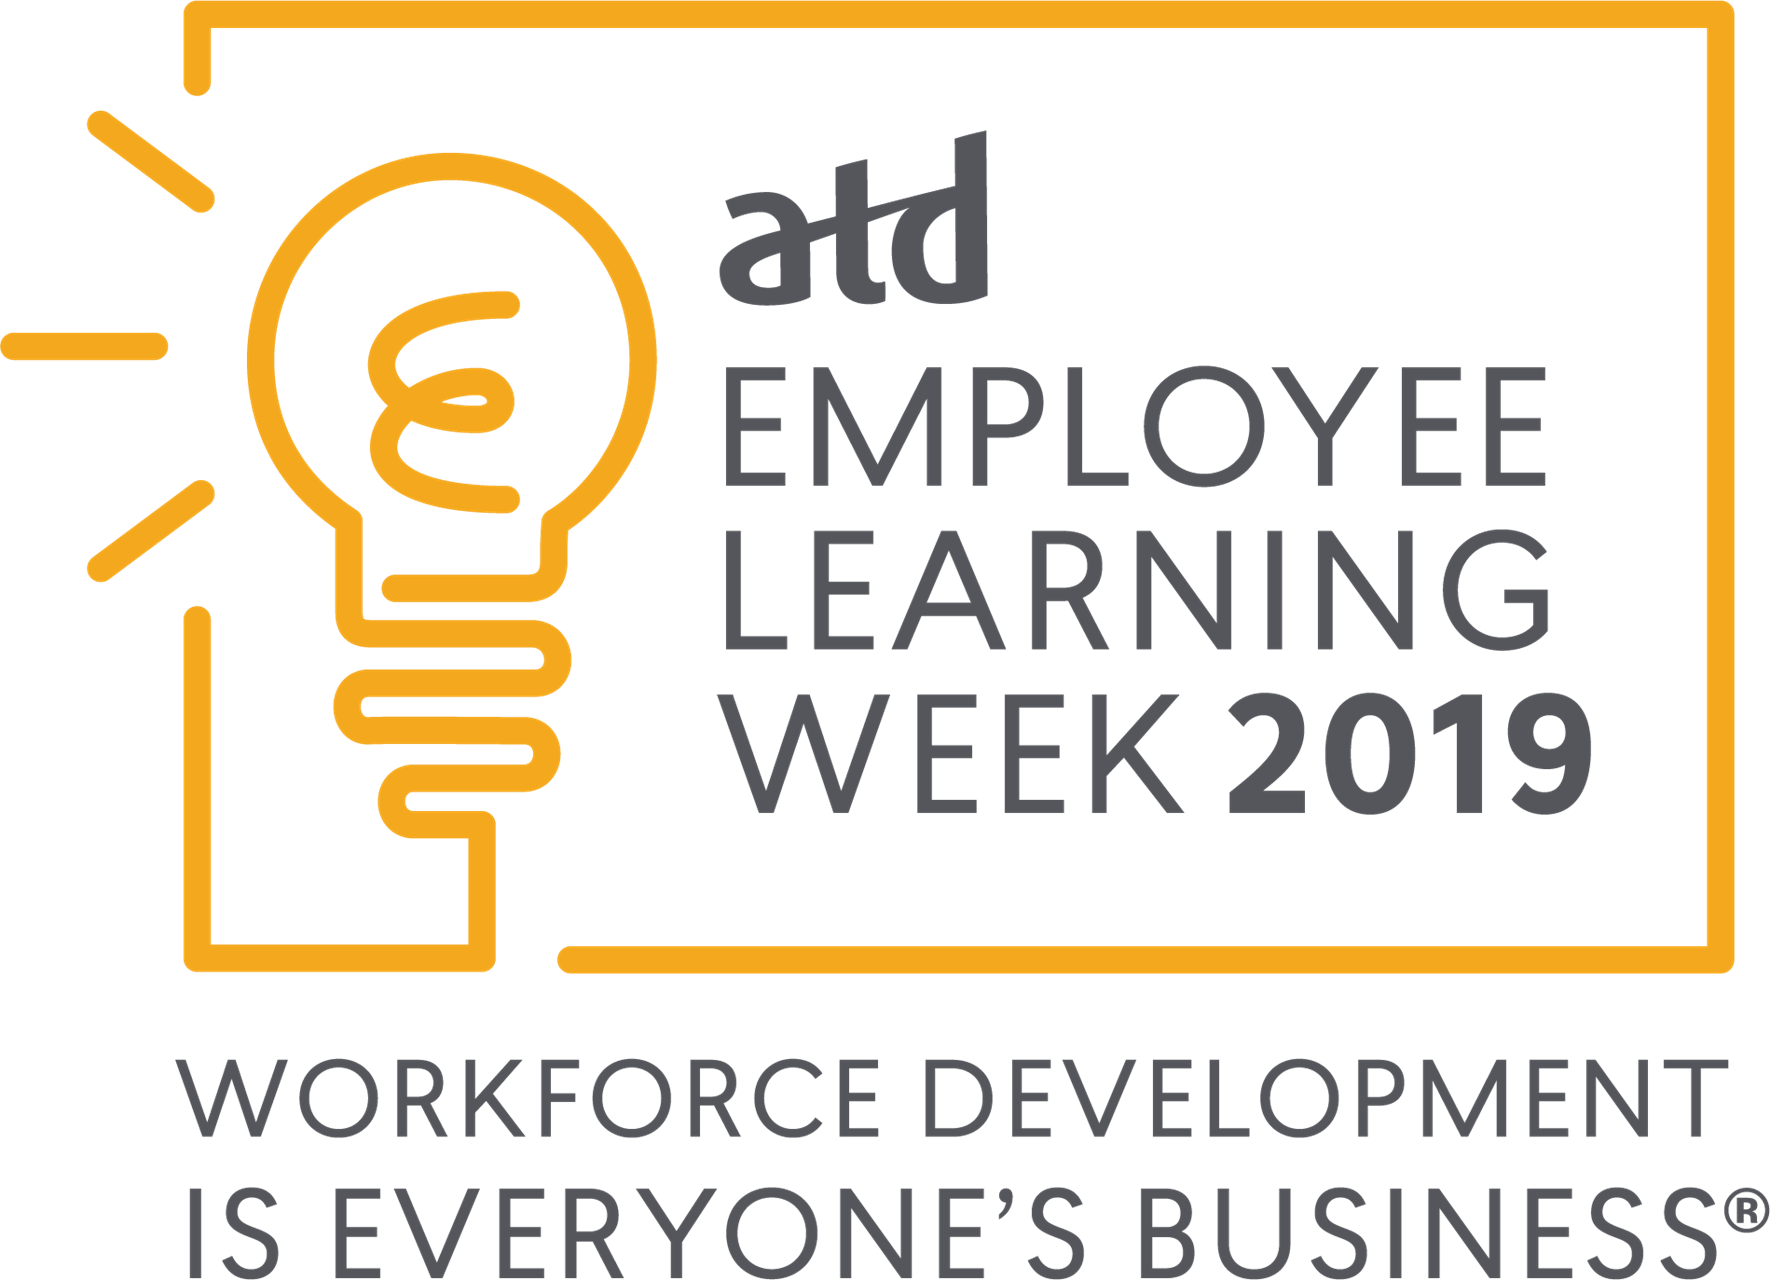 ATD Employee Learning Week Logo